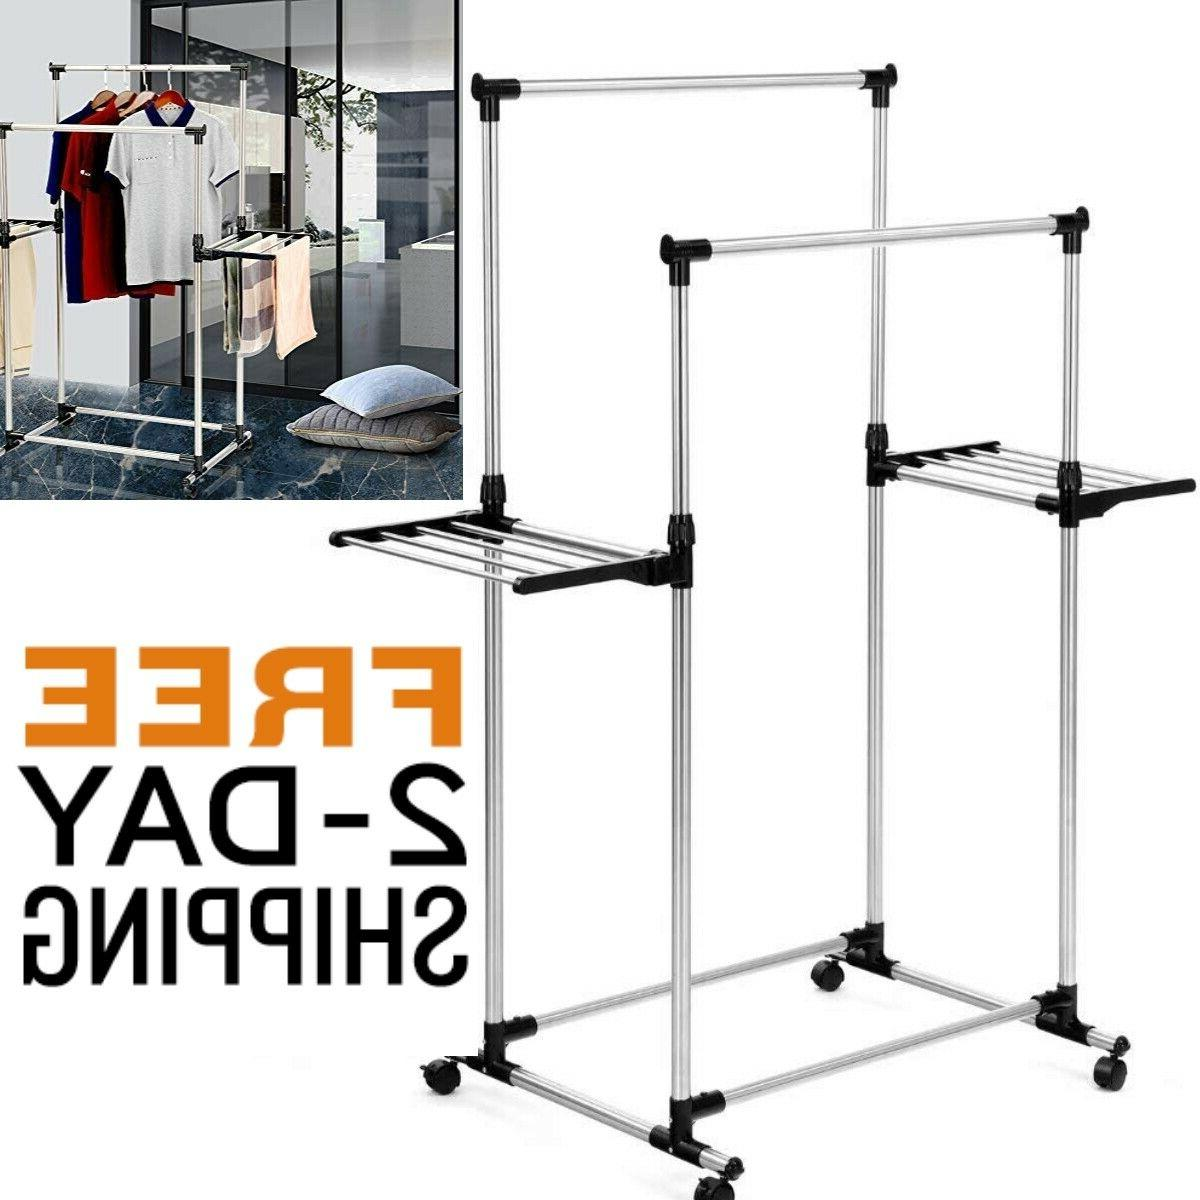 clothes drying rack foldable wings stainless steel